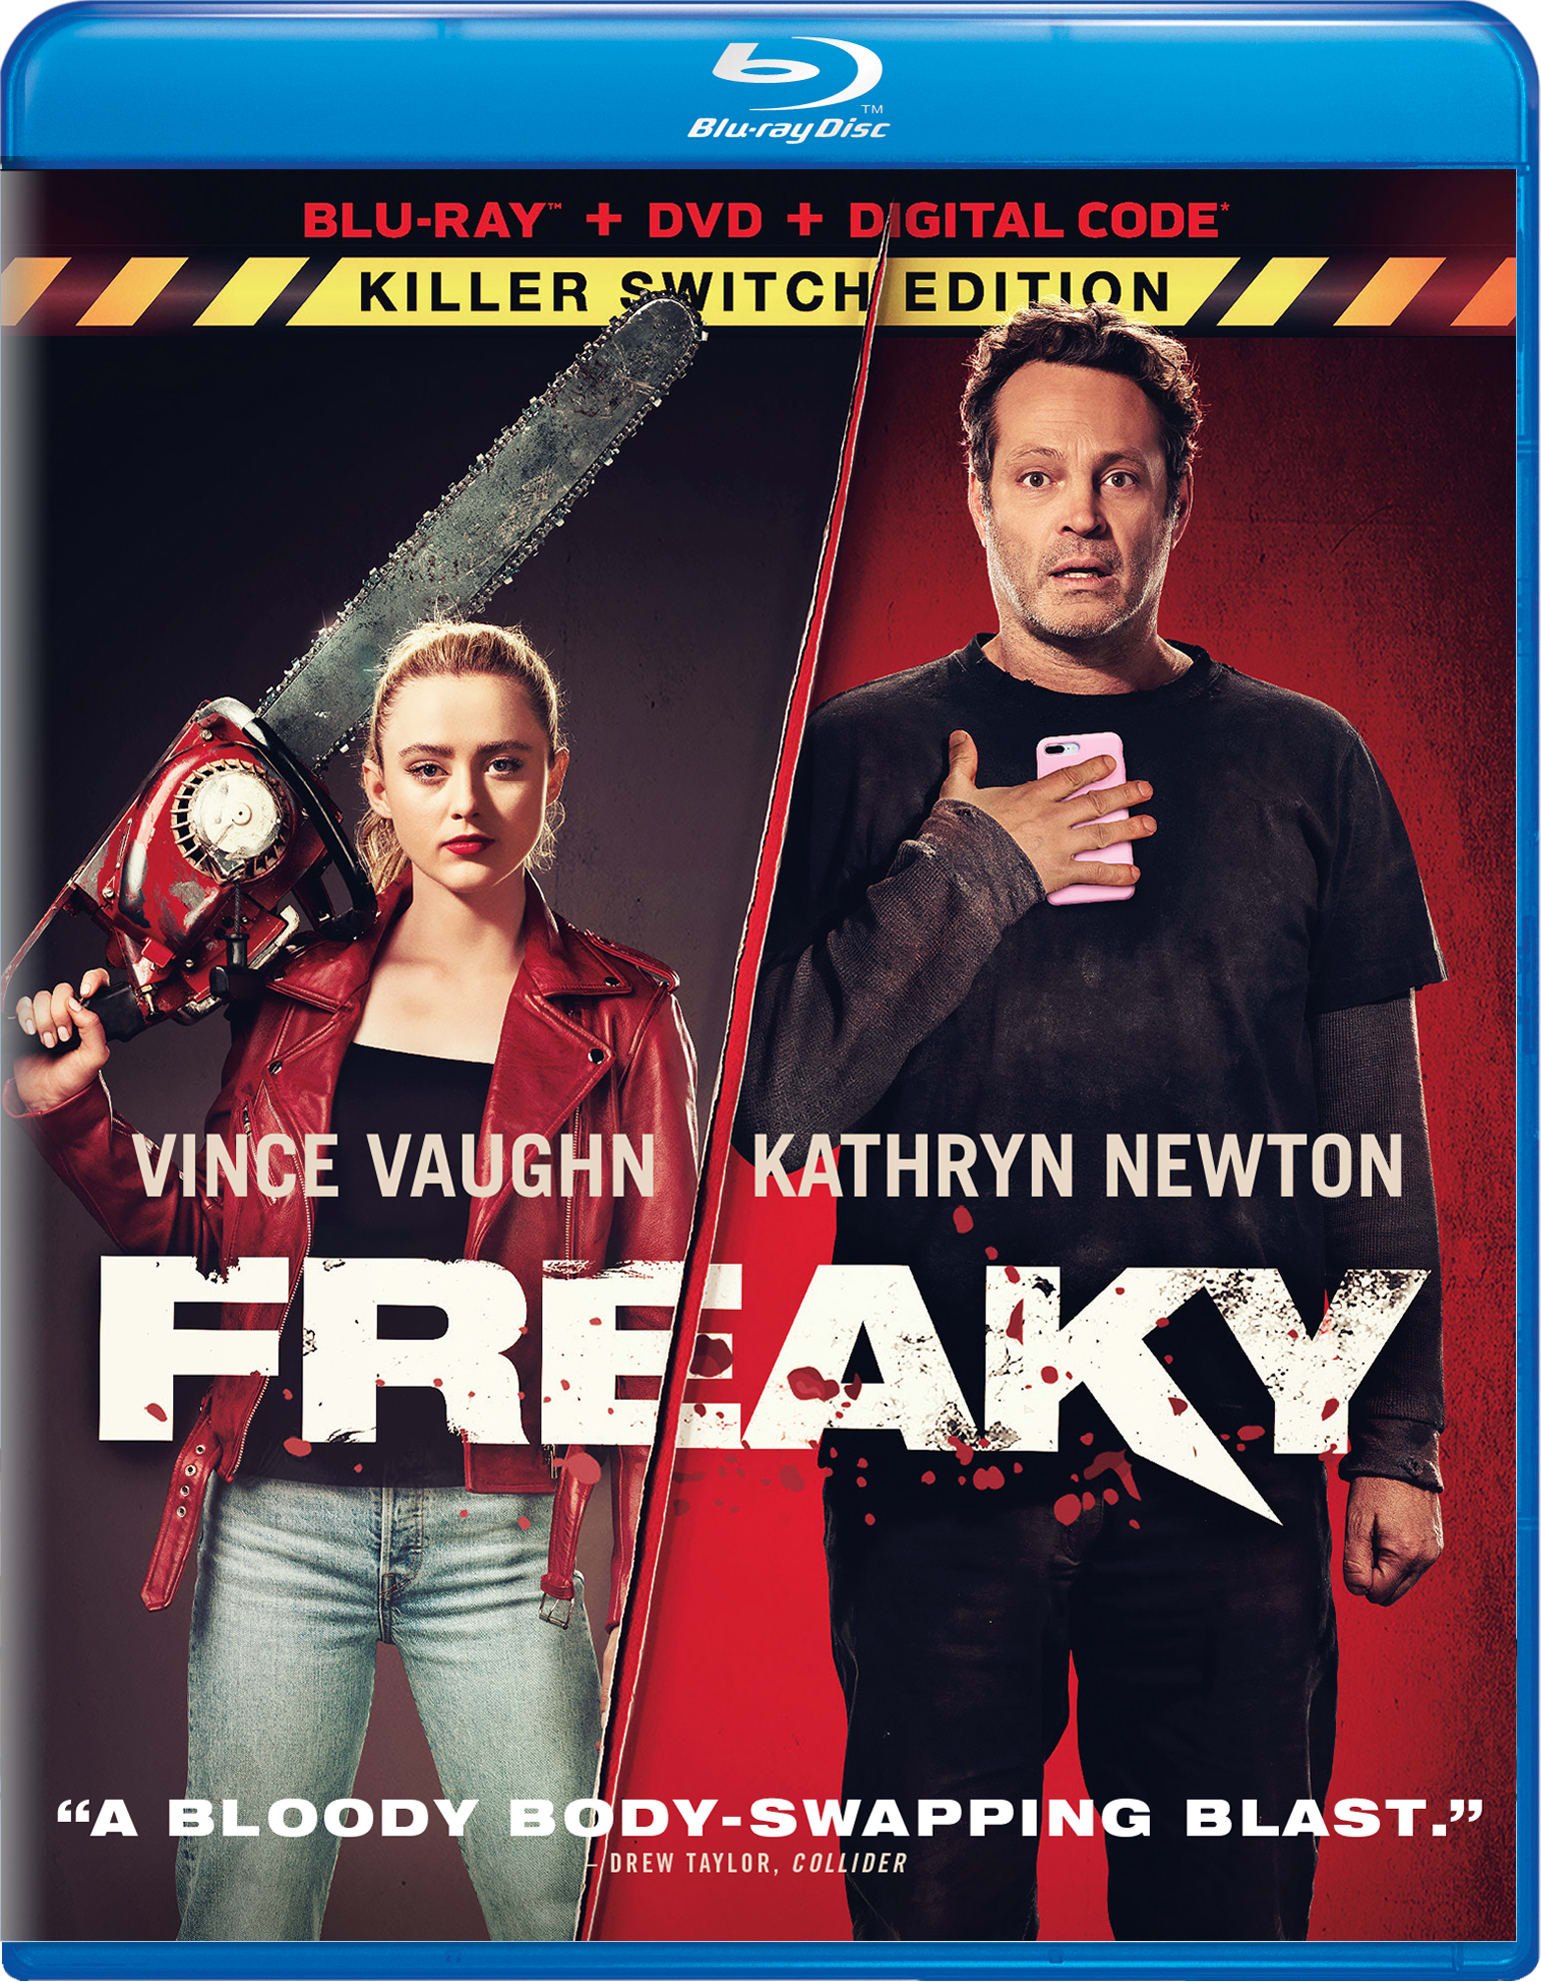 Freaky (with DVD) [Blu-ray]